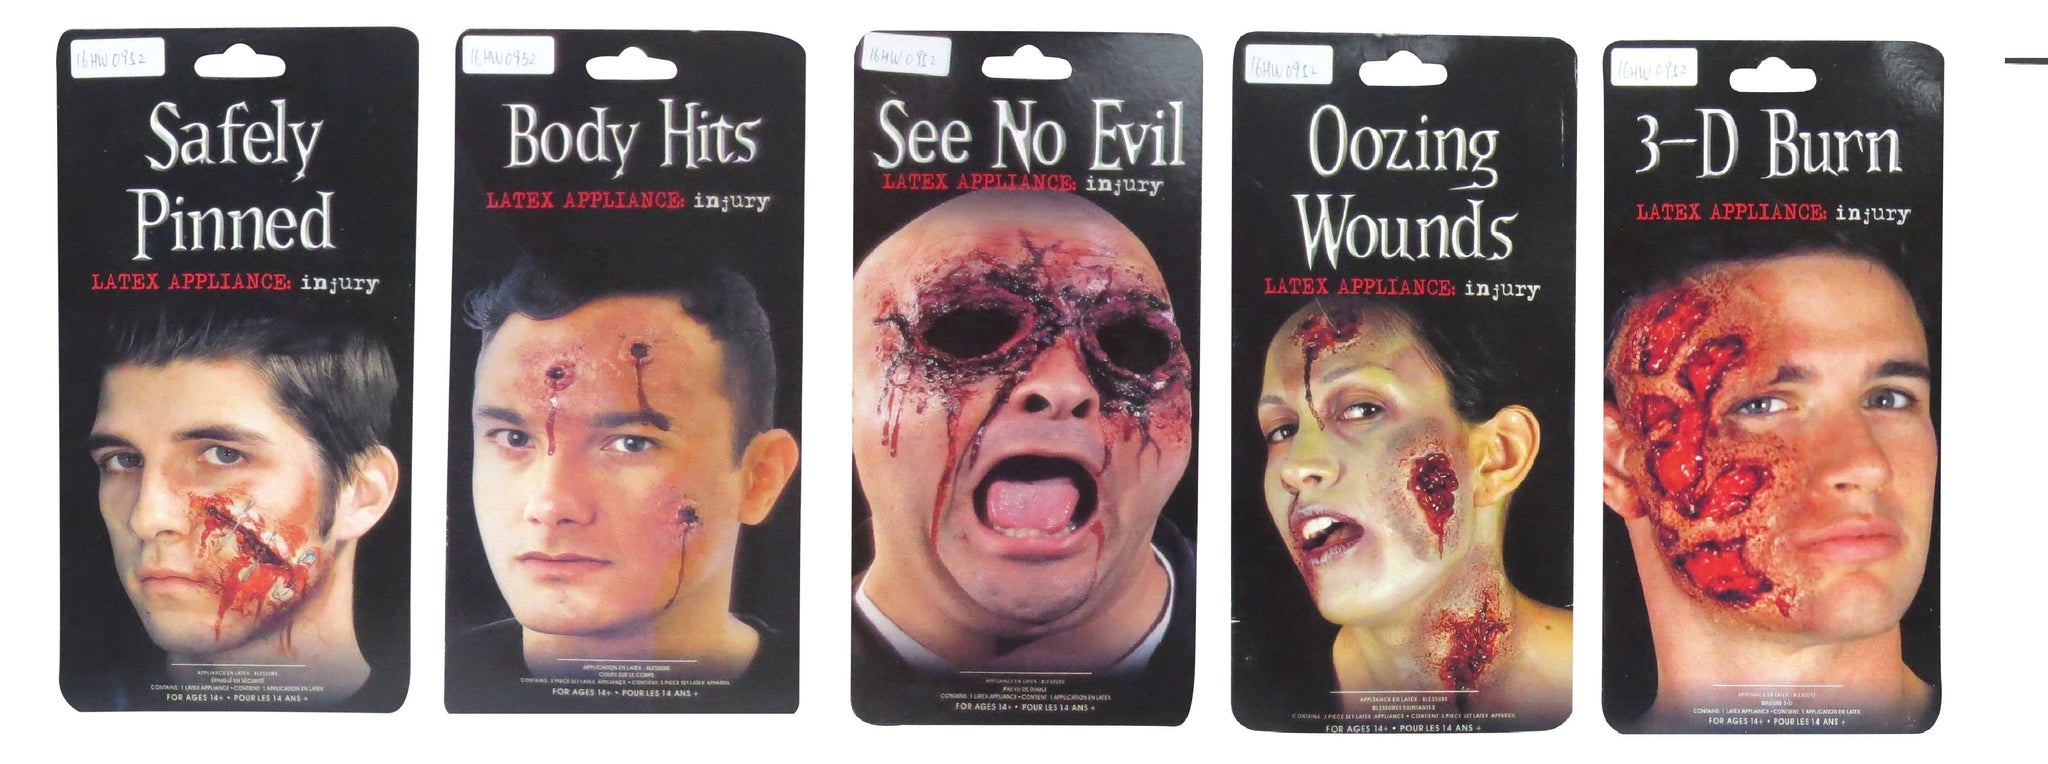 FACE SCAR STICKERS ASST - Christmas World